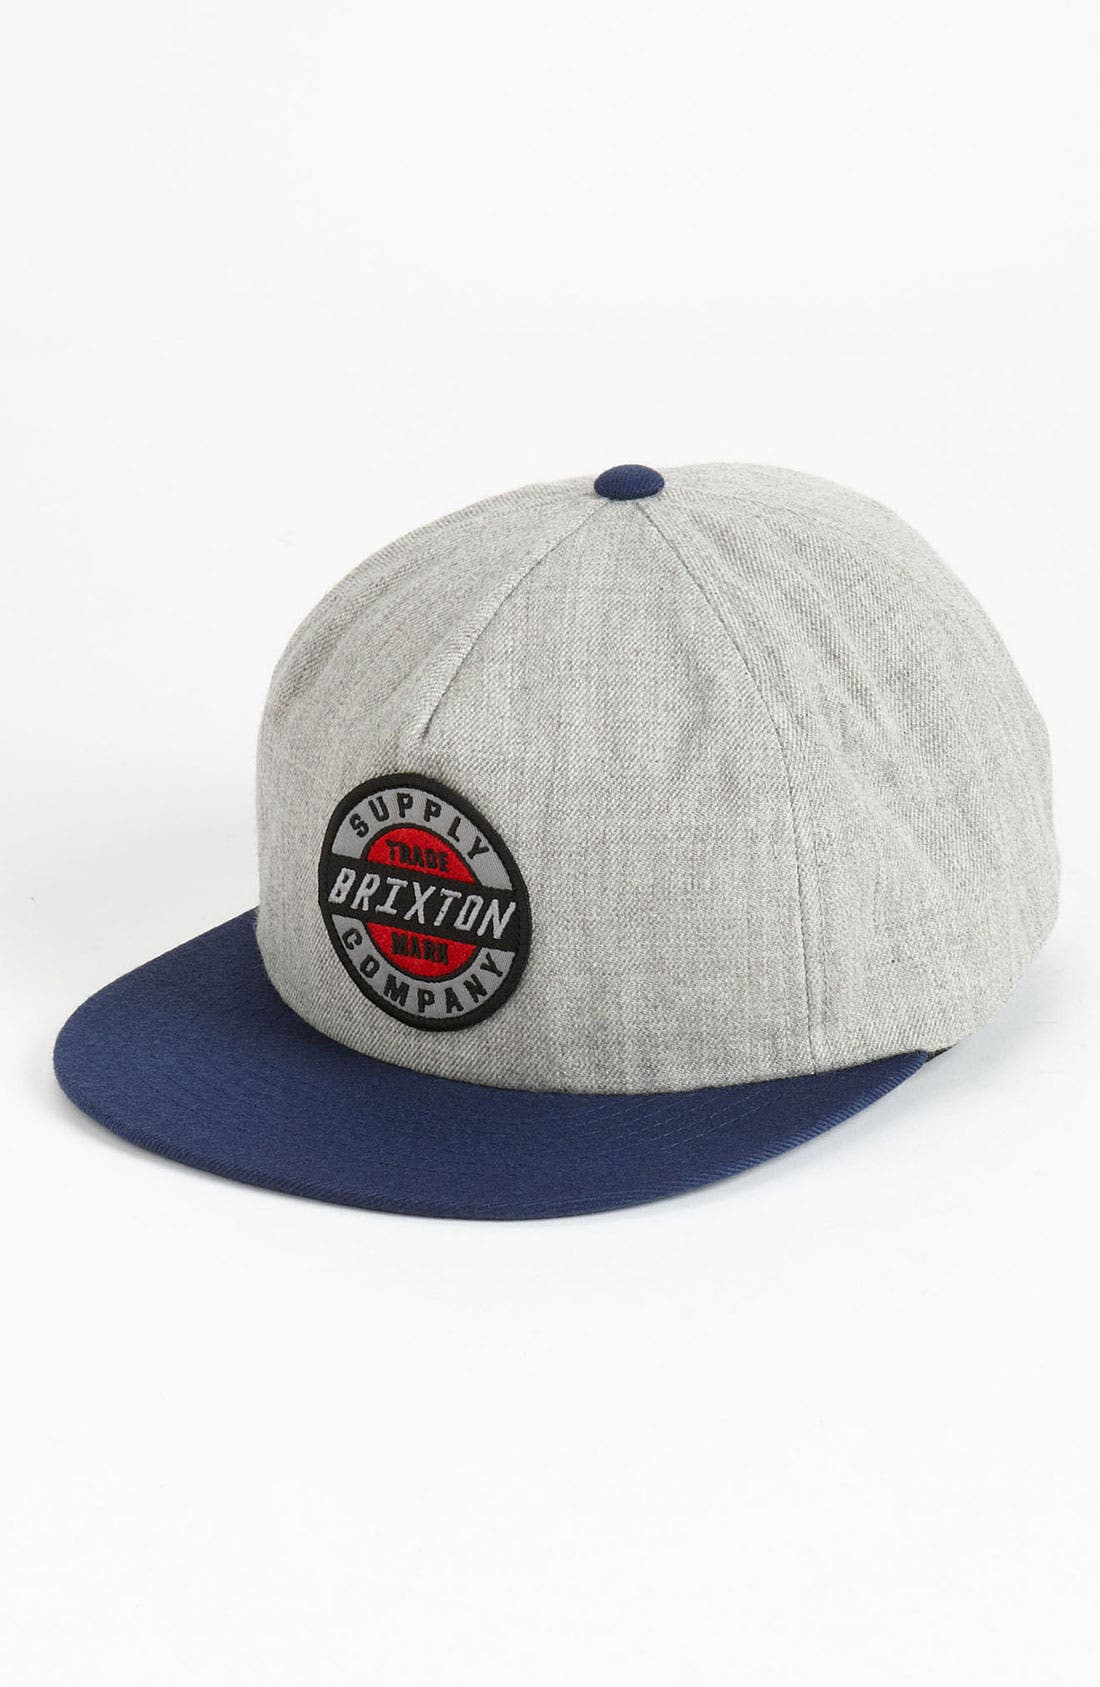 Alternate Image 1 Selected - Brixton 'Council' Snapback Baseball Cap